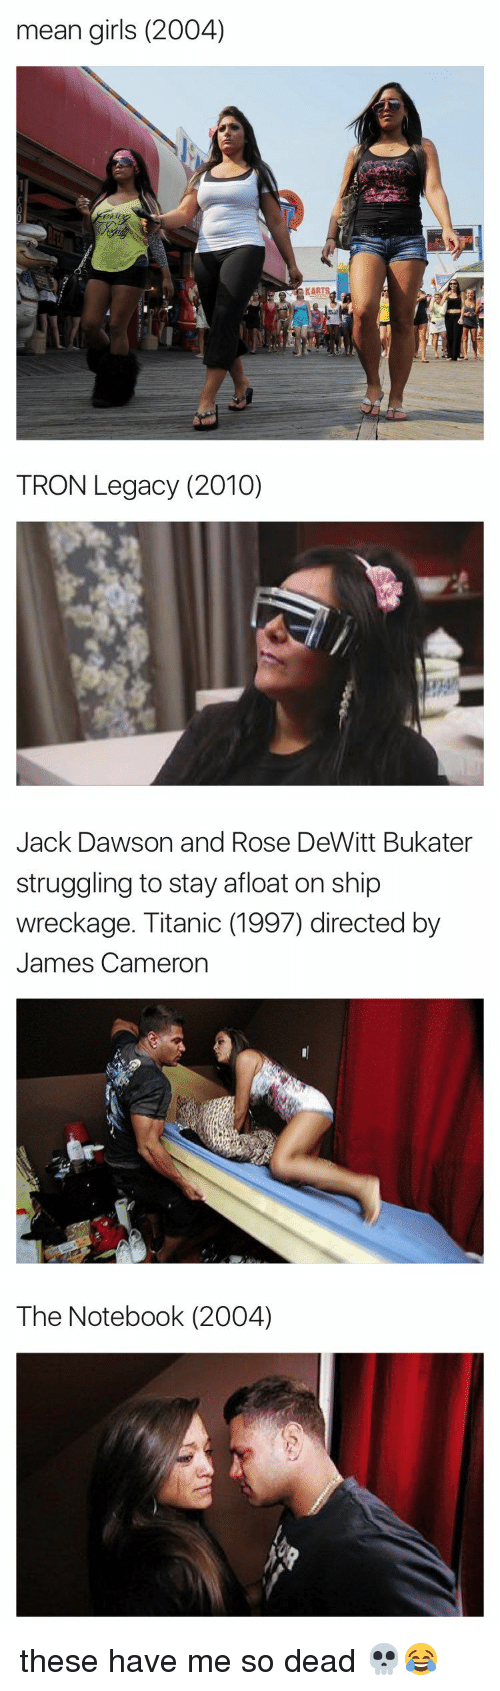 mean girl: mean girls (2004)   TRON Legacy (2010)   Jack Dawson and Rose DeWitt Bukater  struggling to stay afloat on ship  wreckage. Titanic (1997) directed by  James Cameron   The Notebook (2004) these have me so dead 💀😂